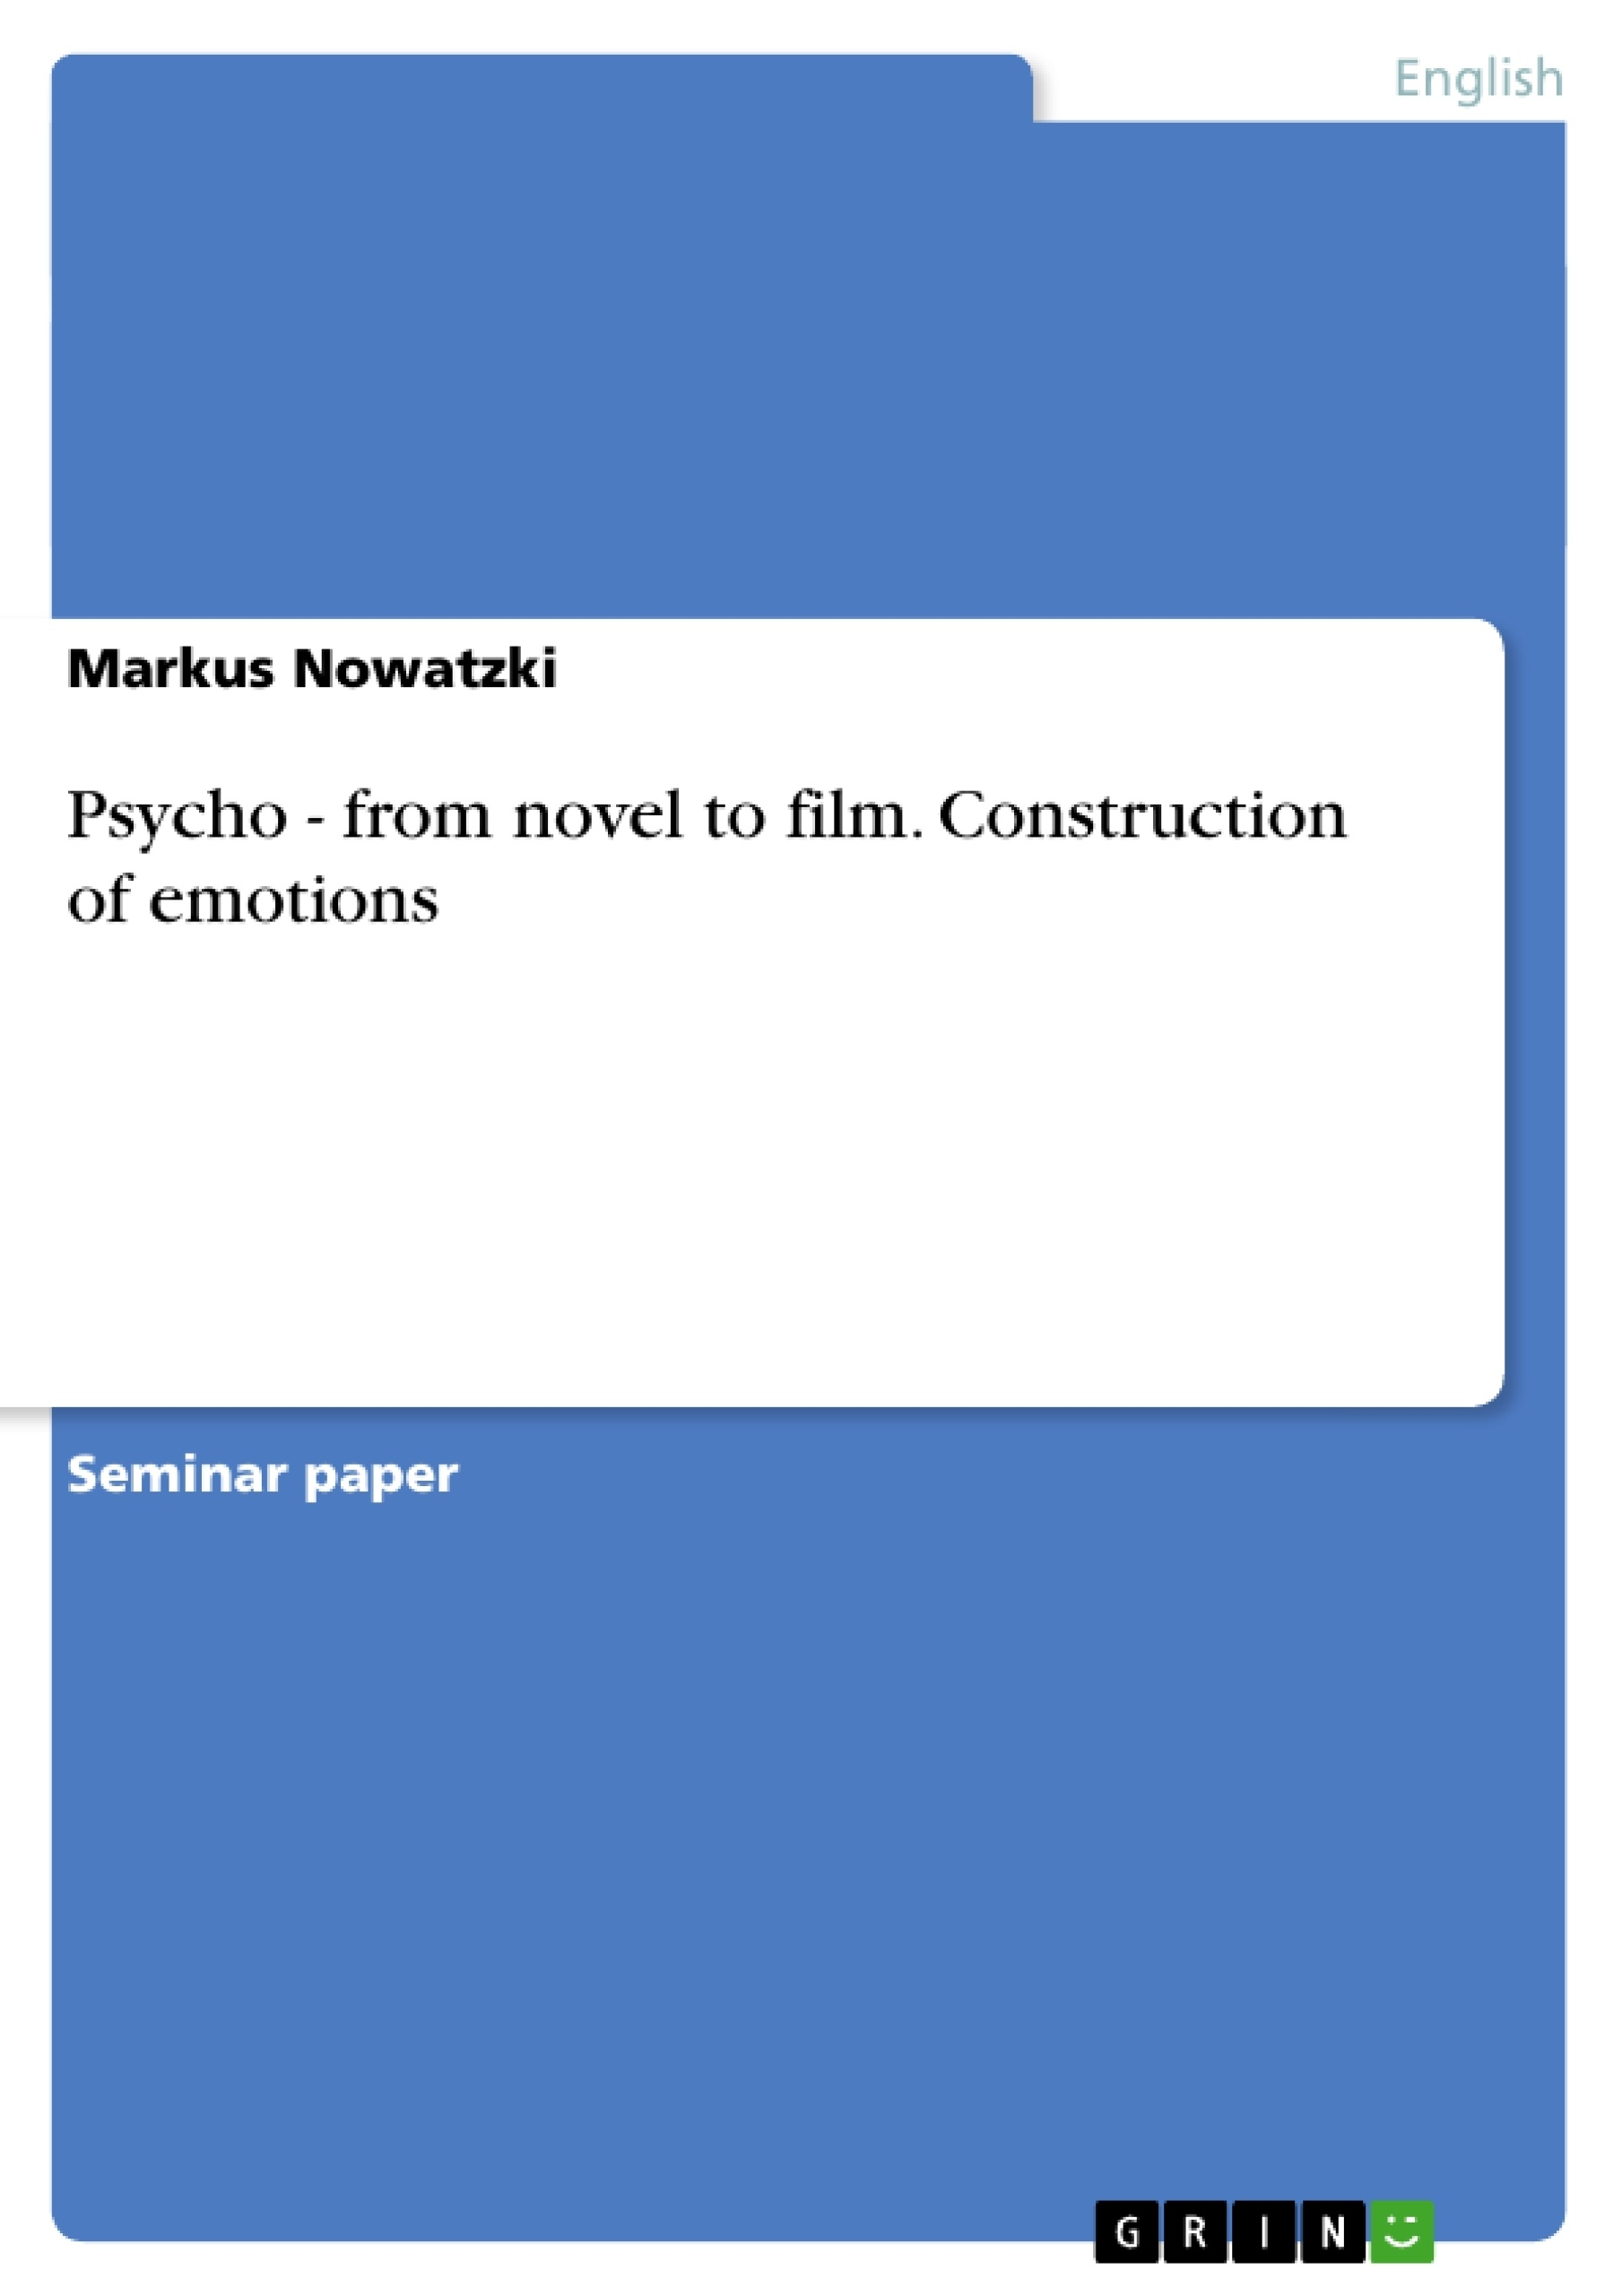 Title: Psycho - from novel to film. Construction of emotions